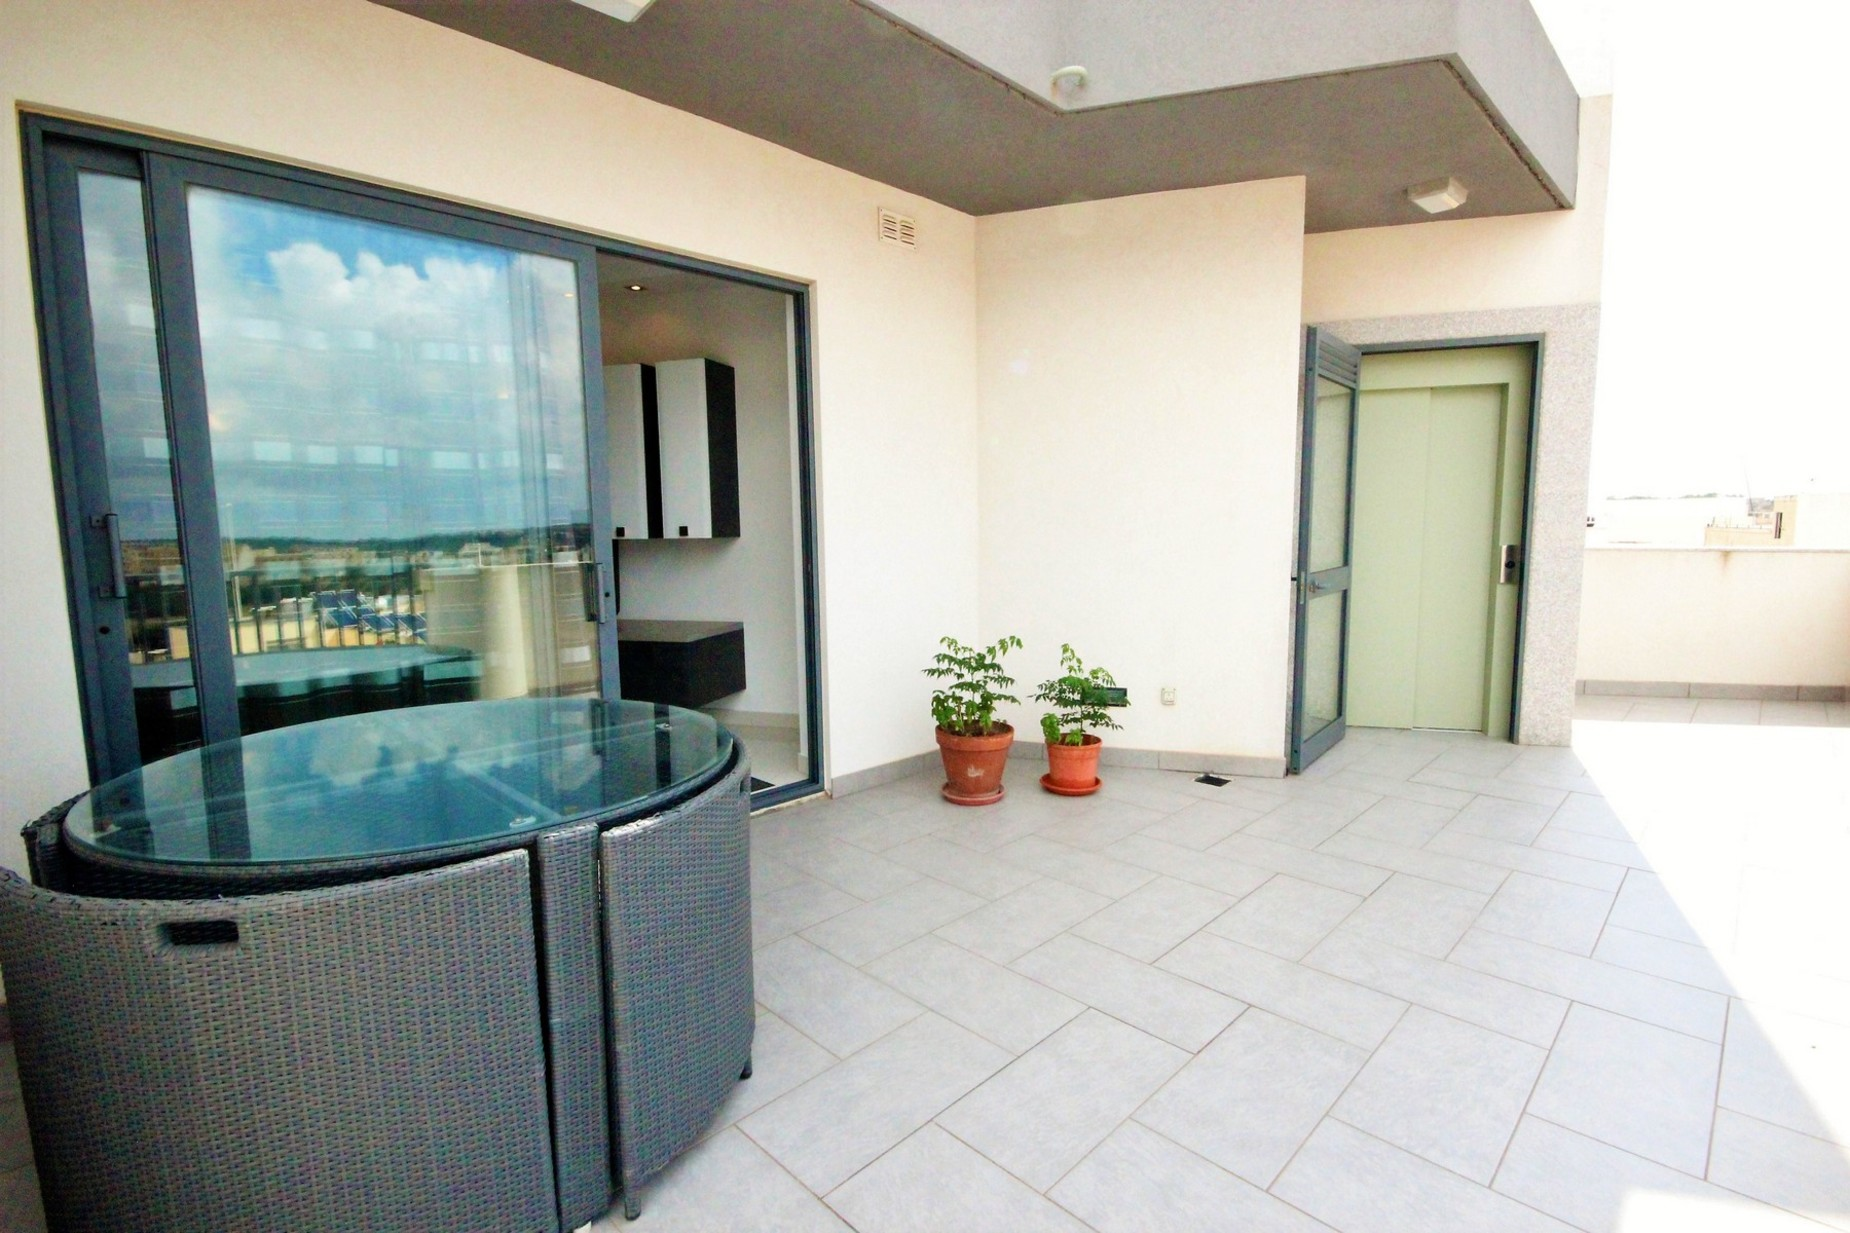 2 bed Penthouse For Rent in Rabat, Rabat - thumb 8